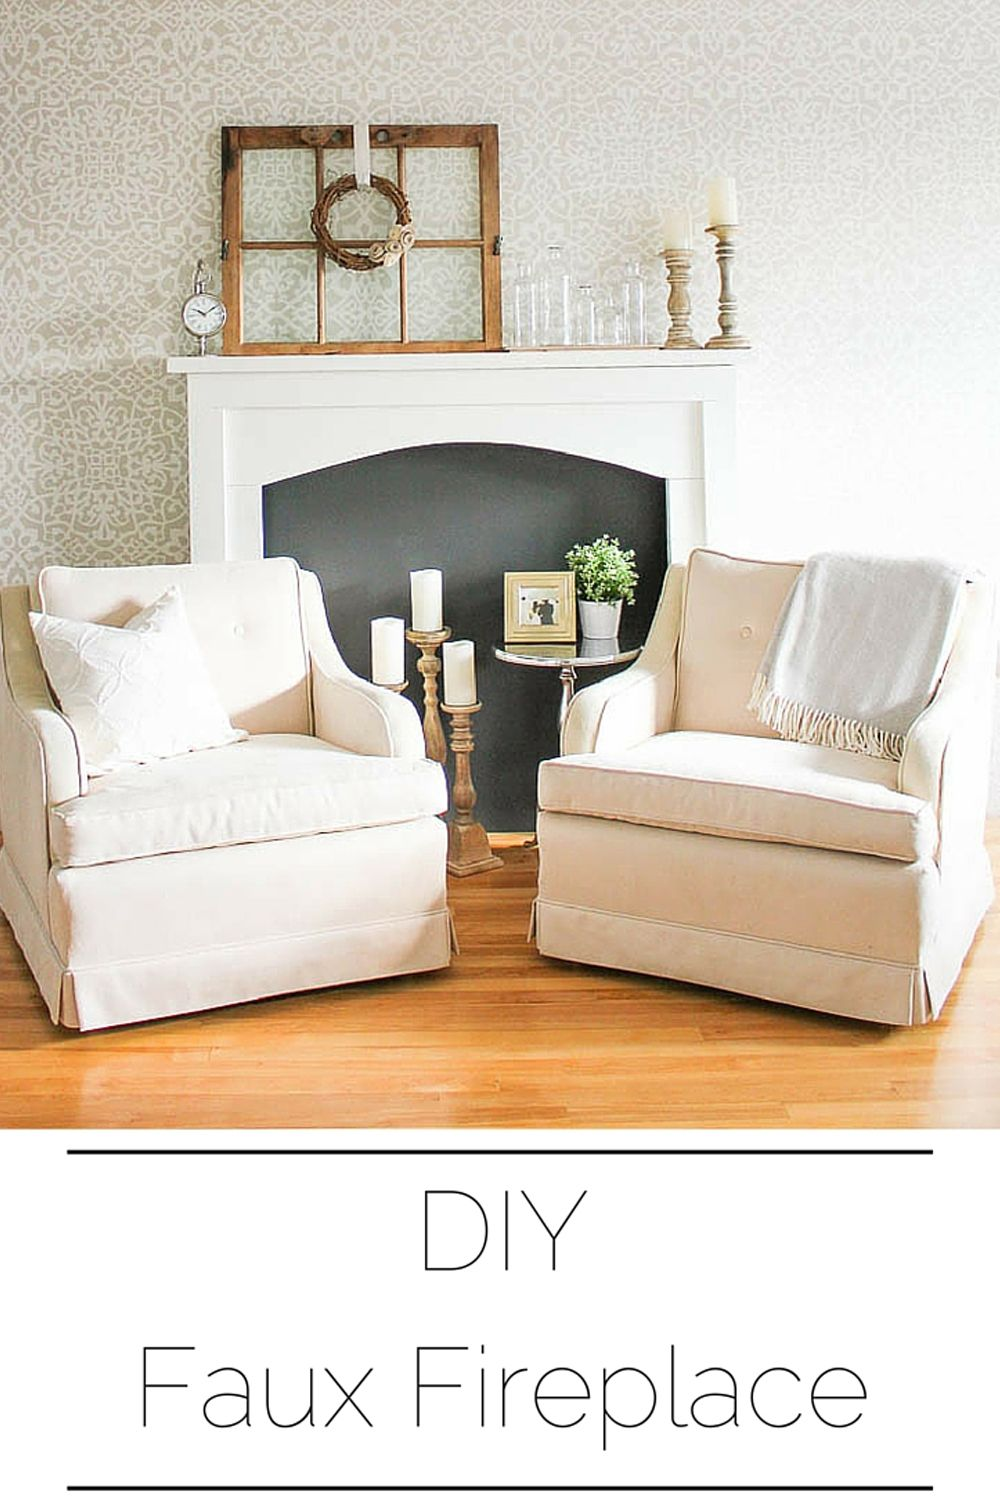 Diy faux fireplace mantel diy faux fireplace faux fireplace and